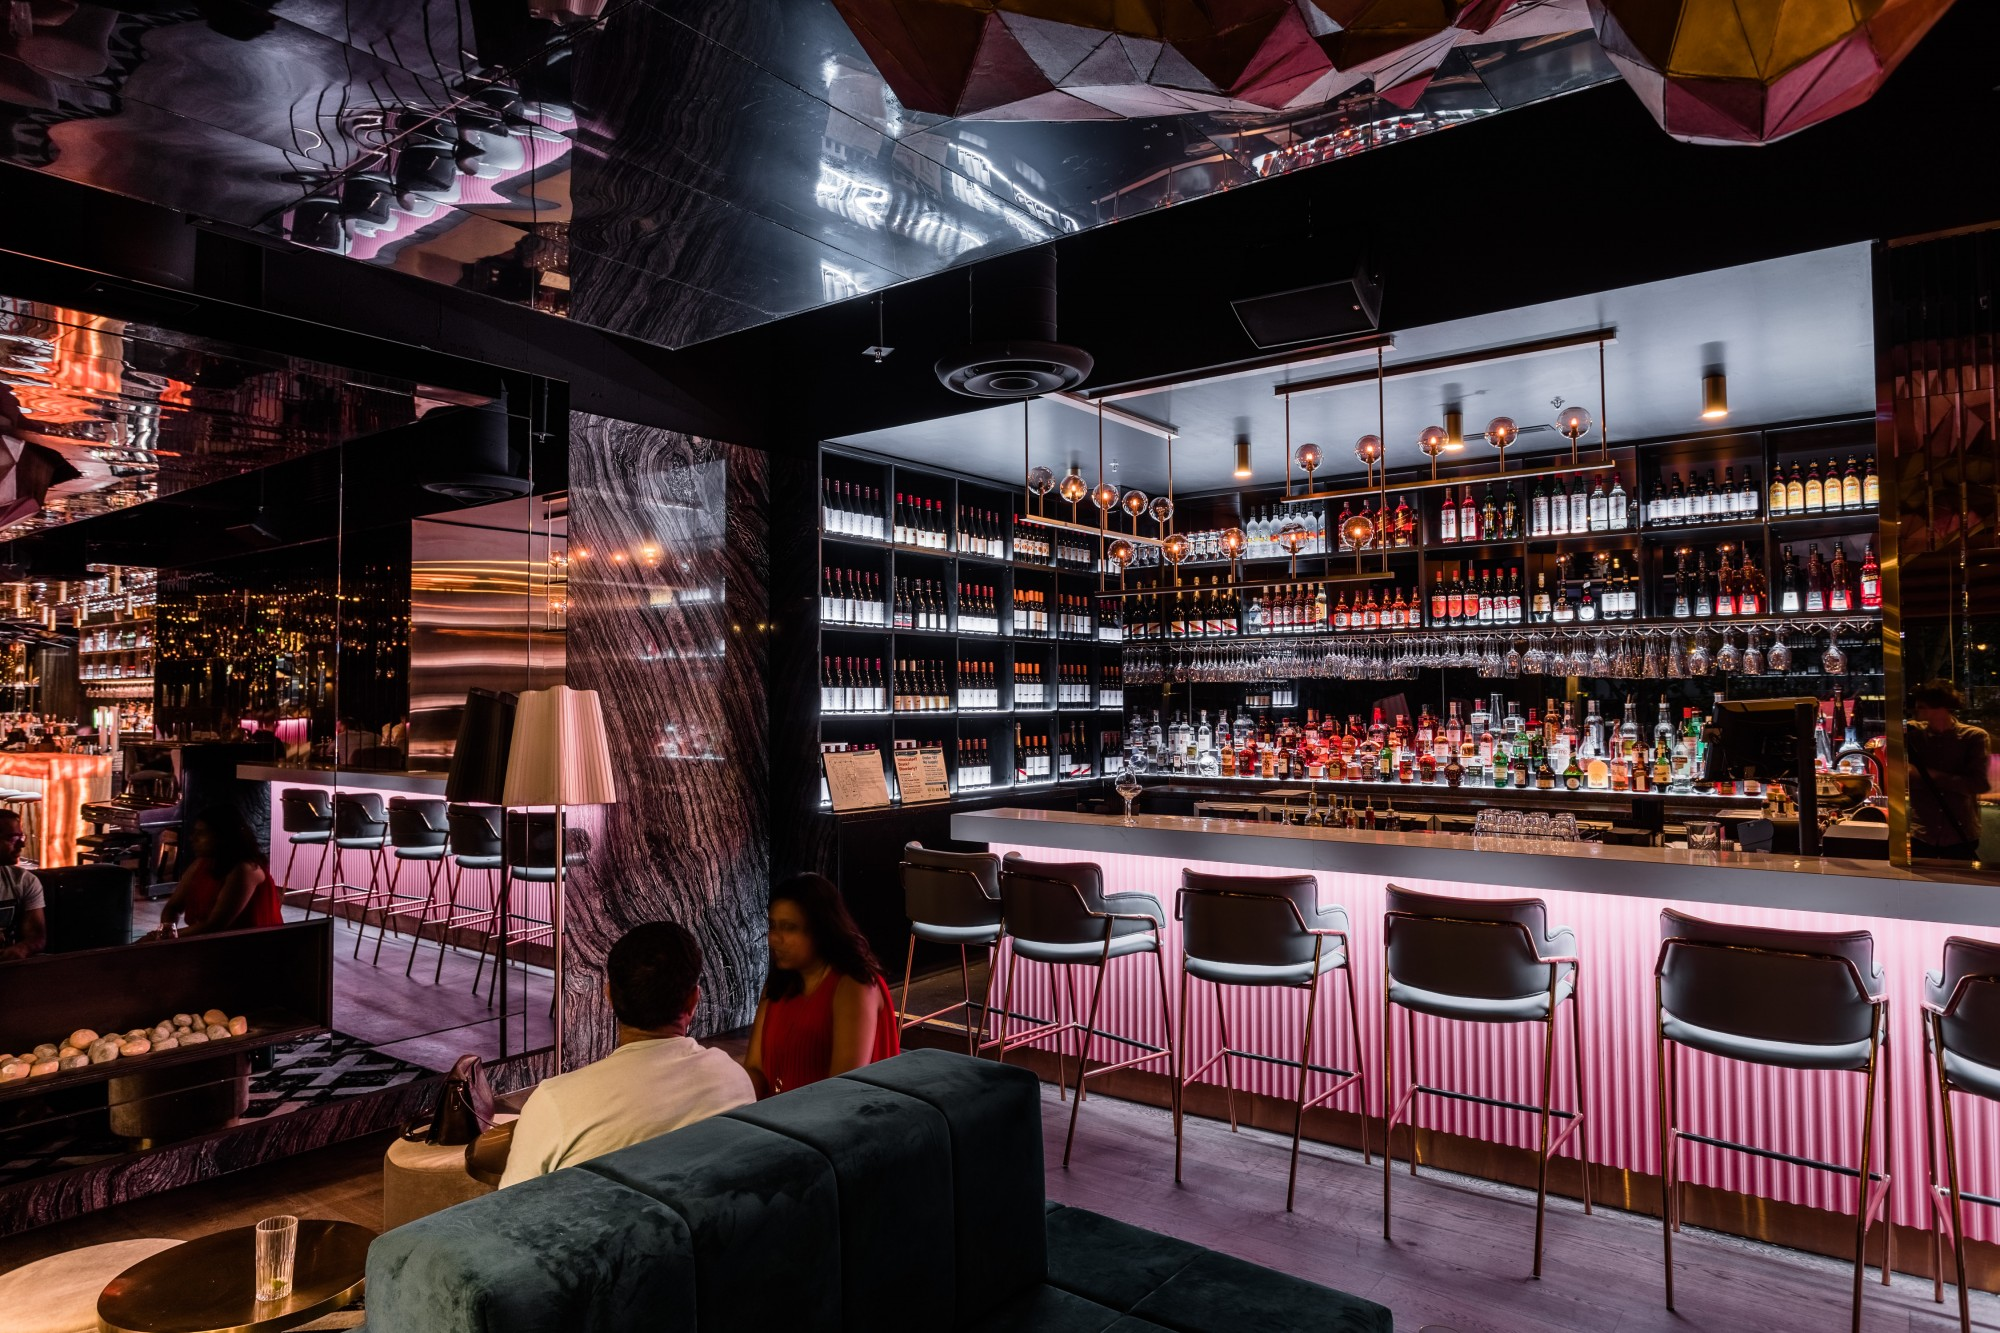 Which is the best venue for the private function in Melbourne?